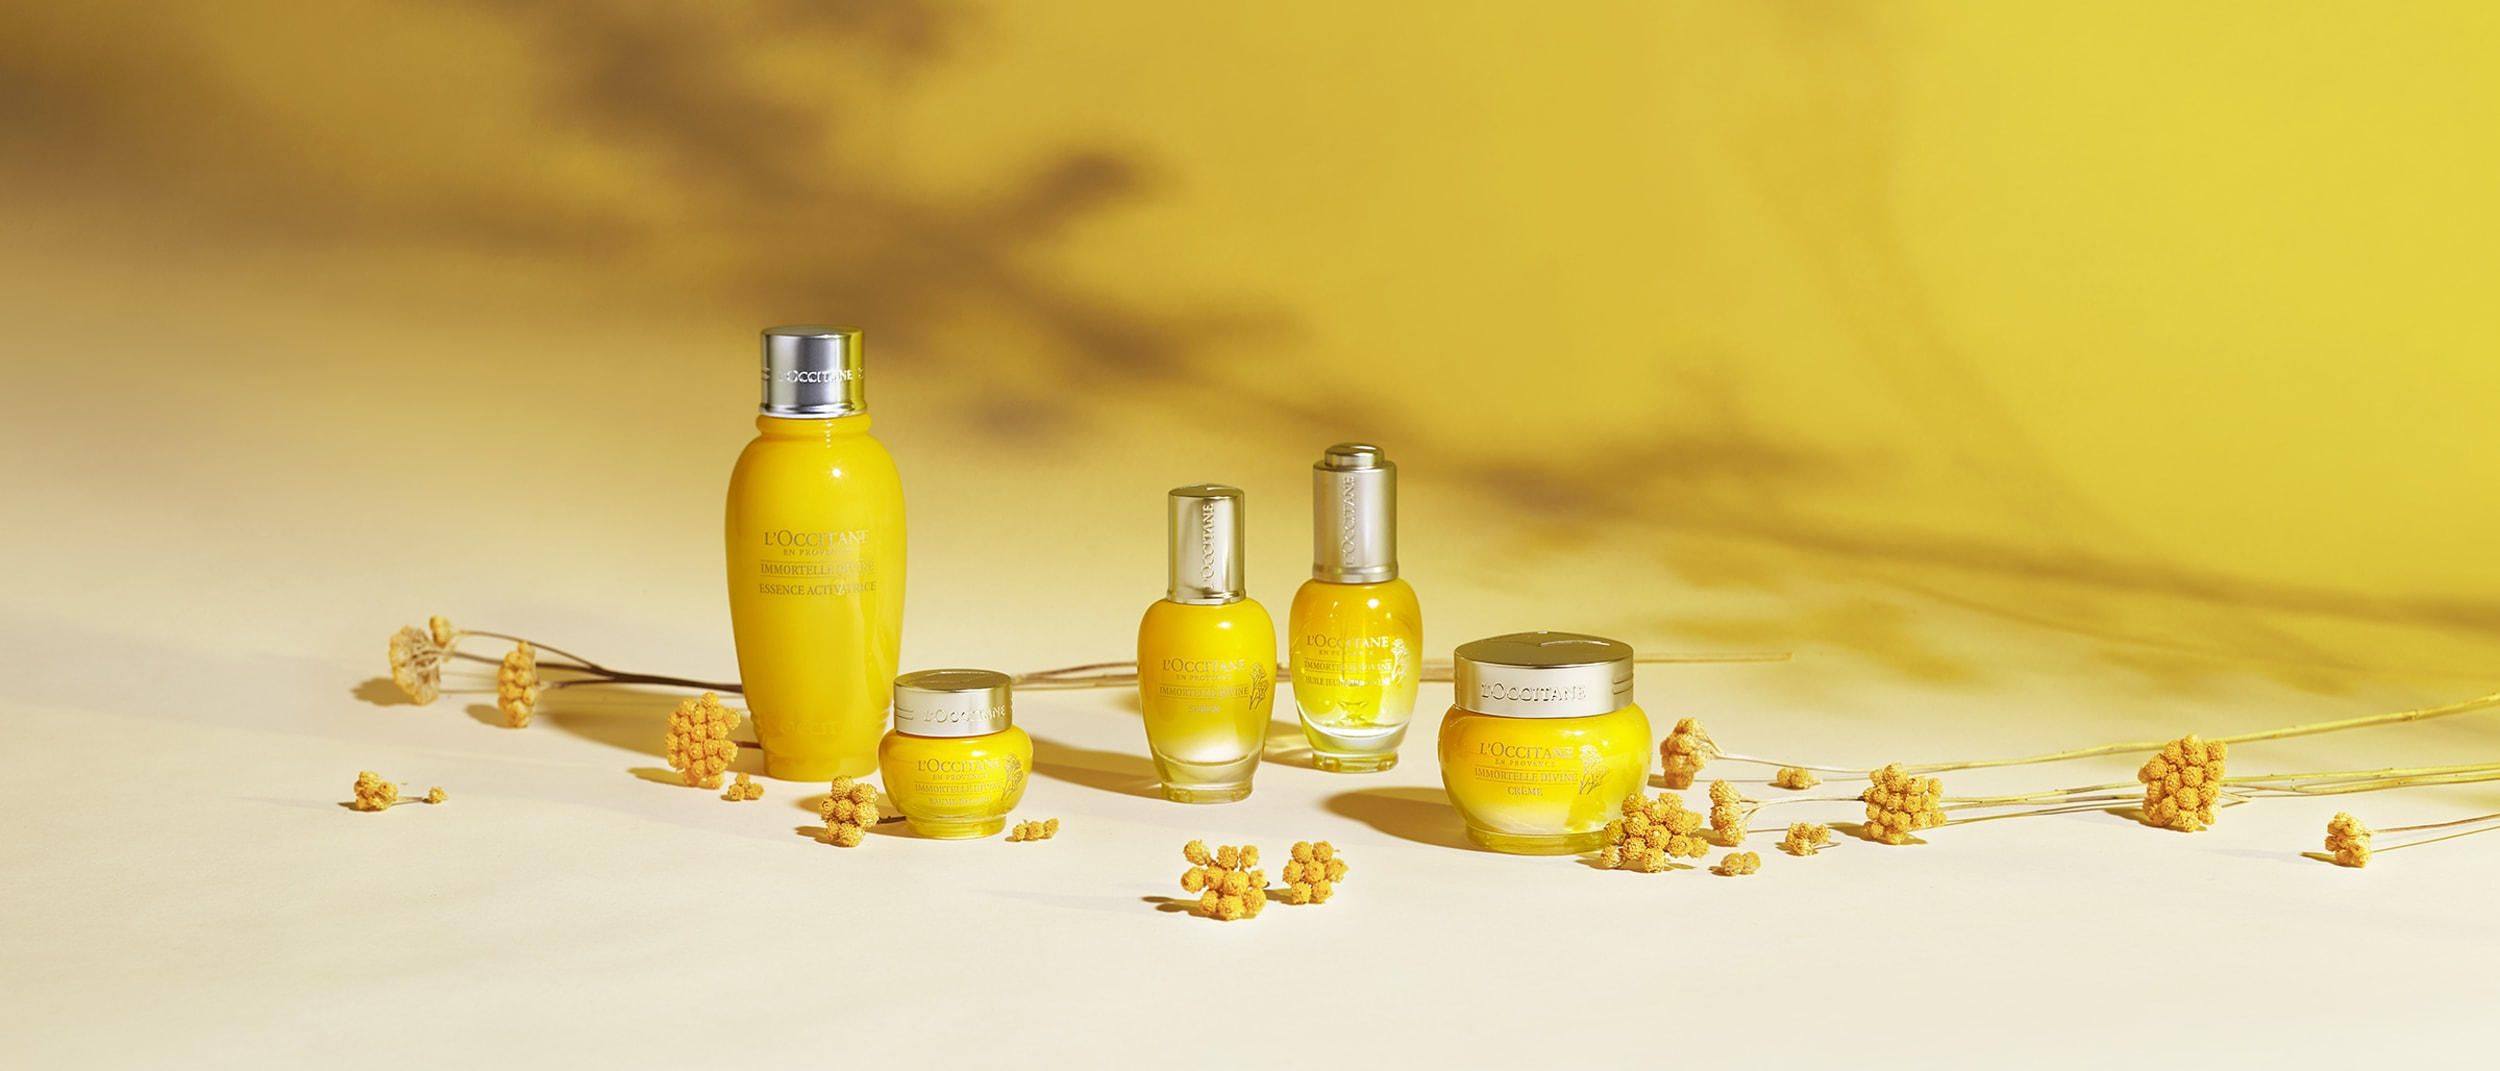 Discover the Genius Skincare at L'OCCITANE